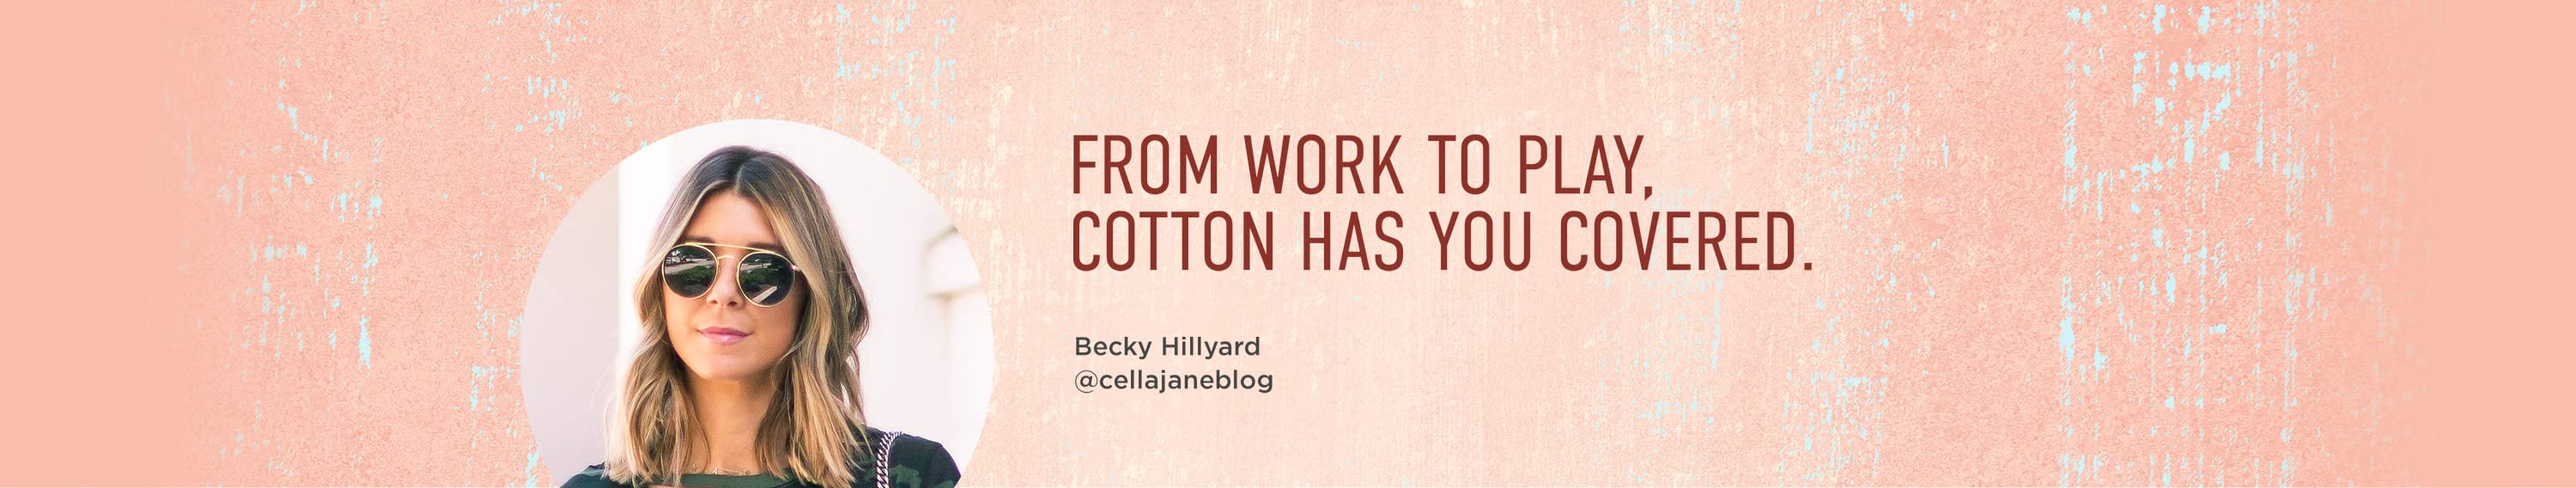 From work to play, cotton has you covered.